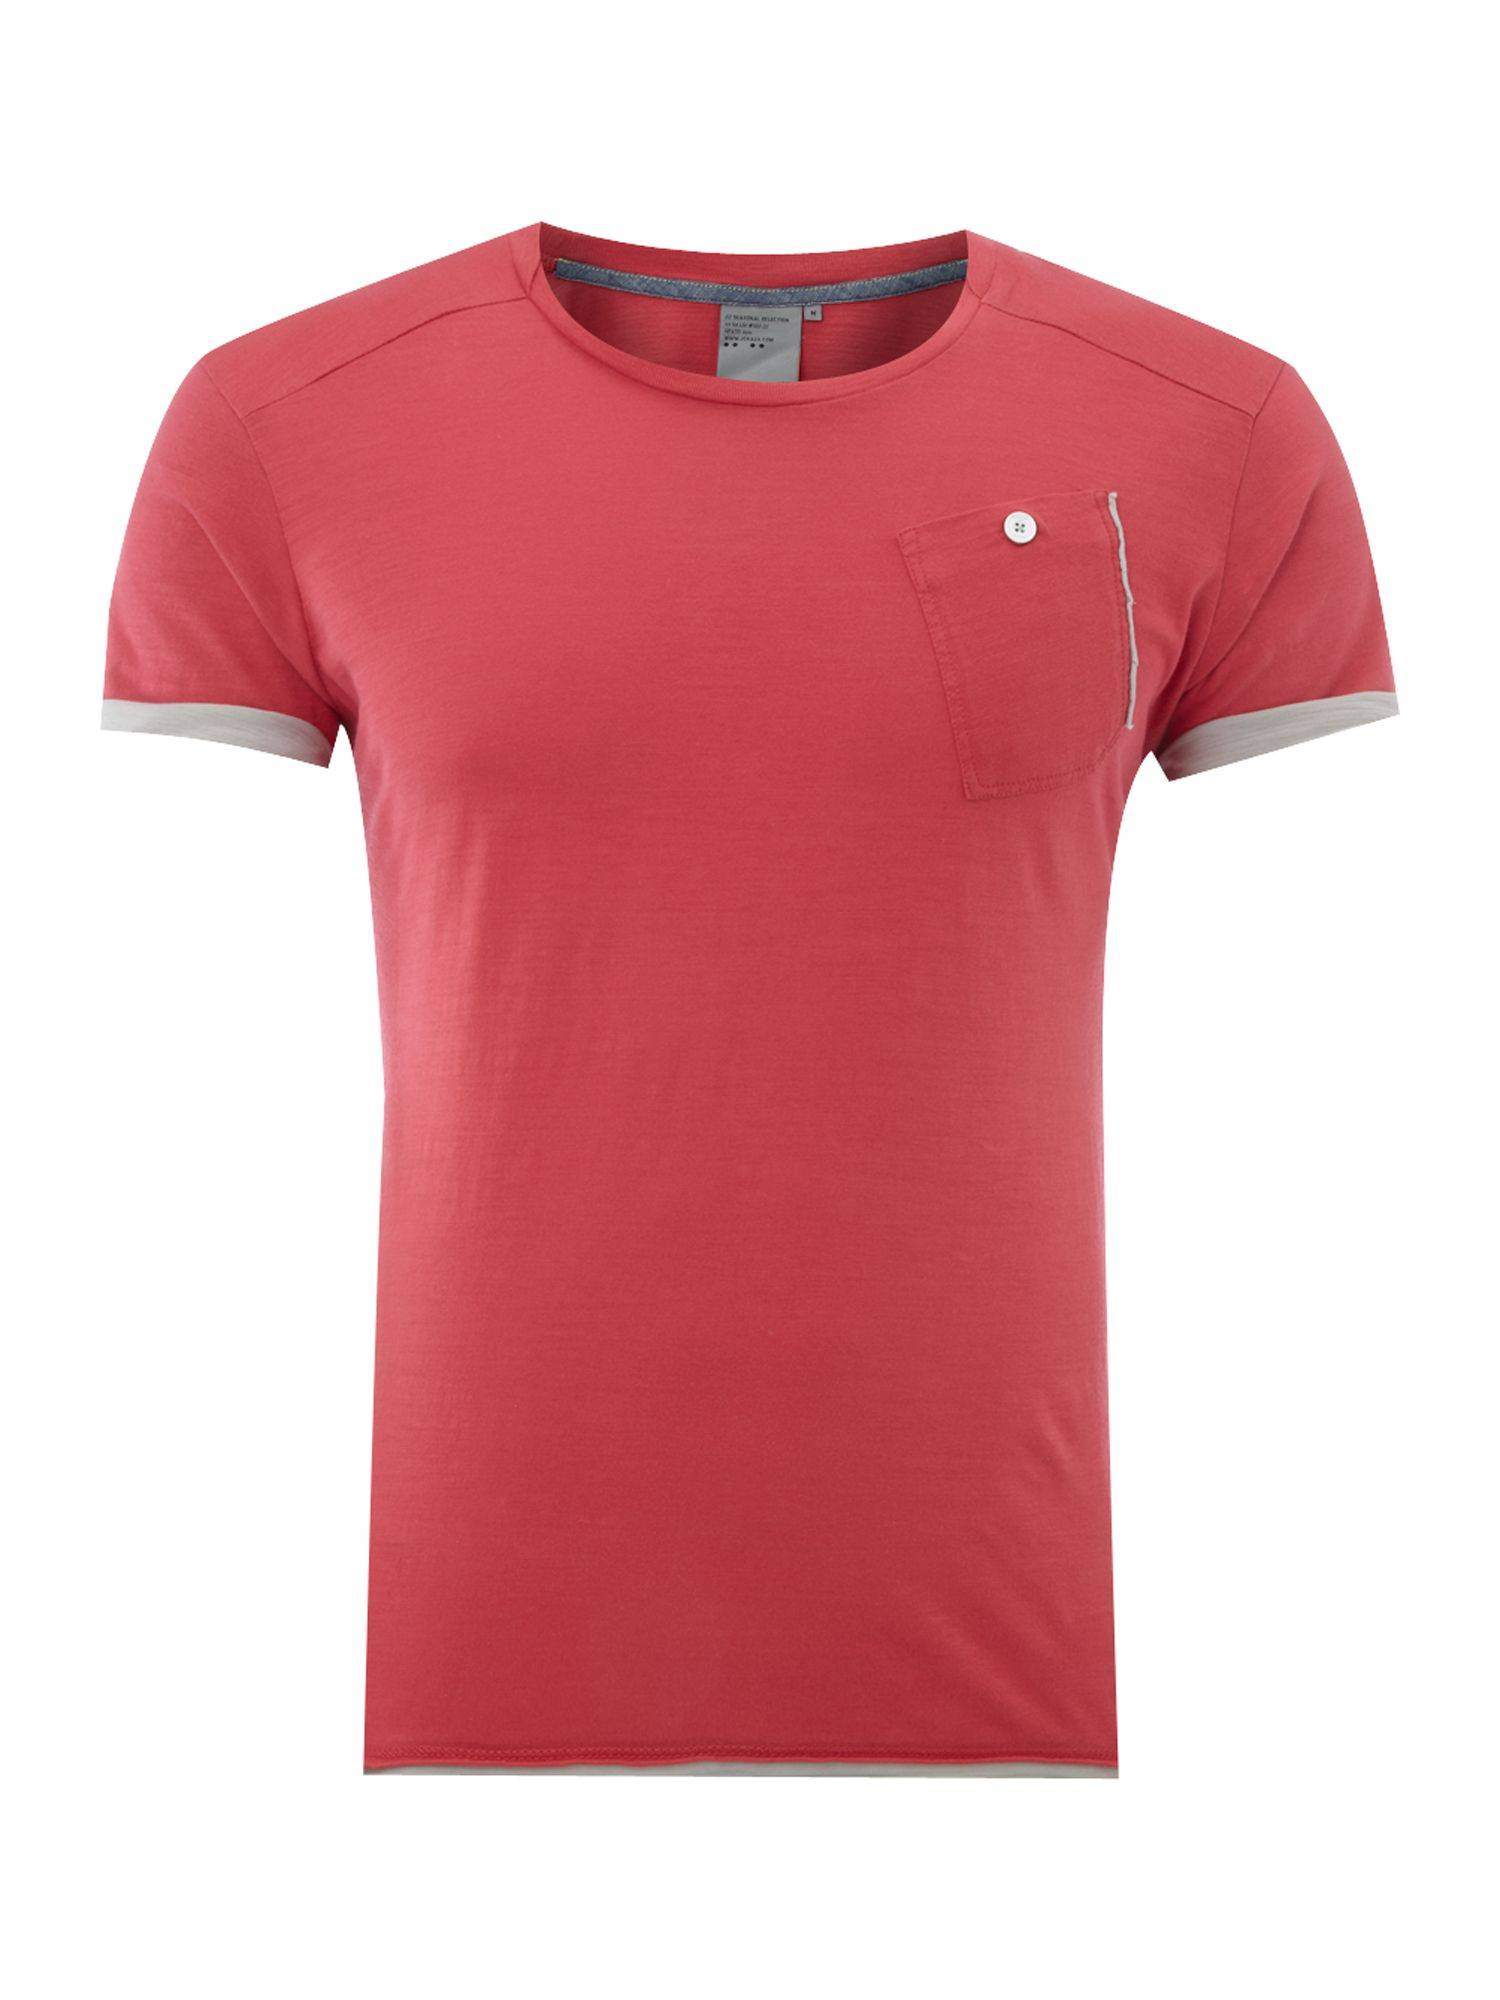 JC Rags Mens JC Rags Pocket crew neck T-shirt, Red product image